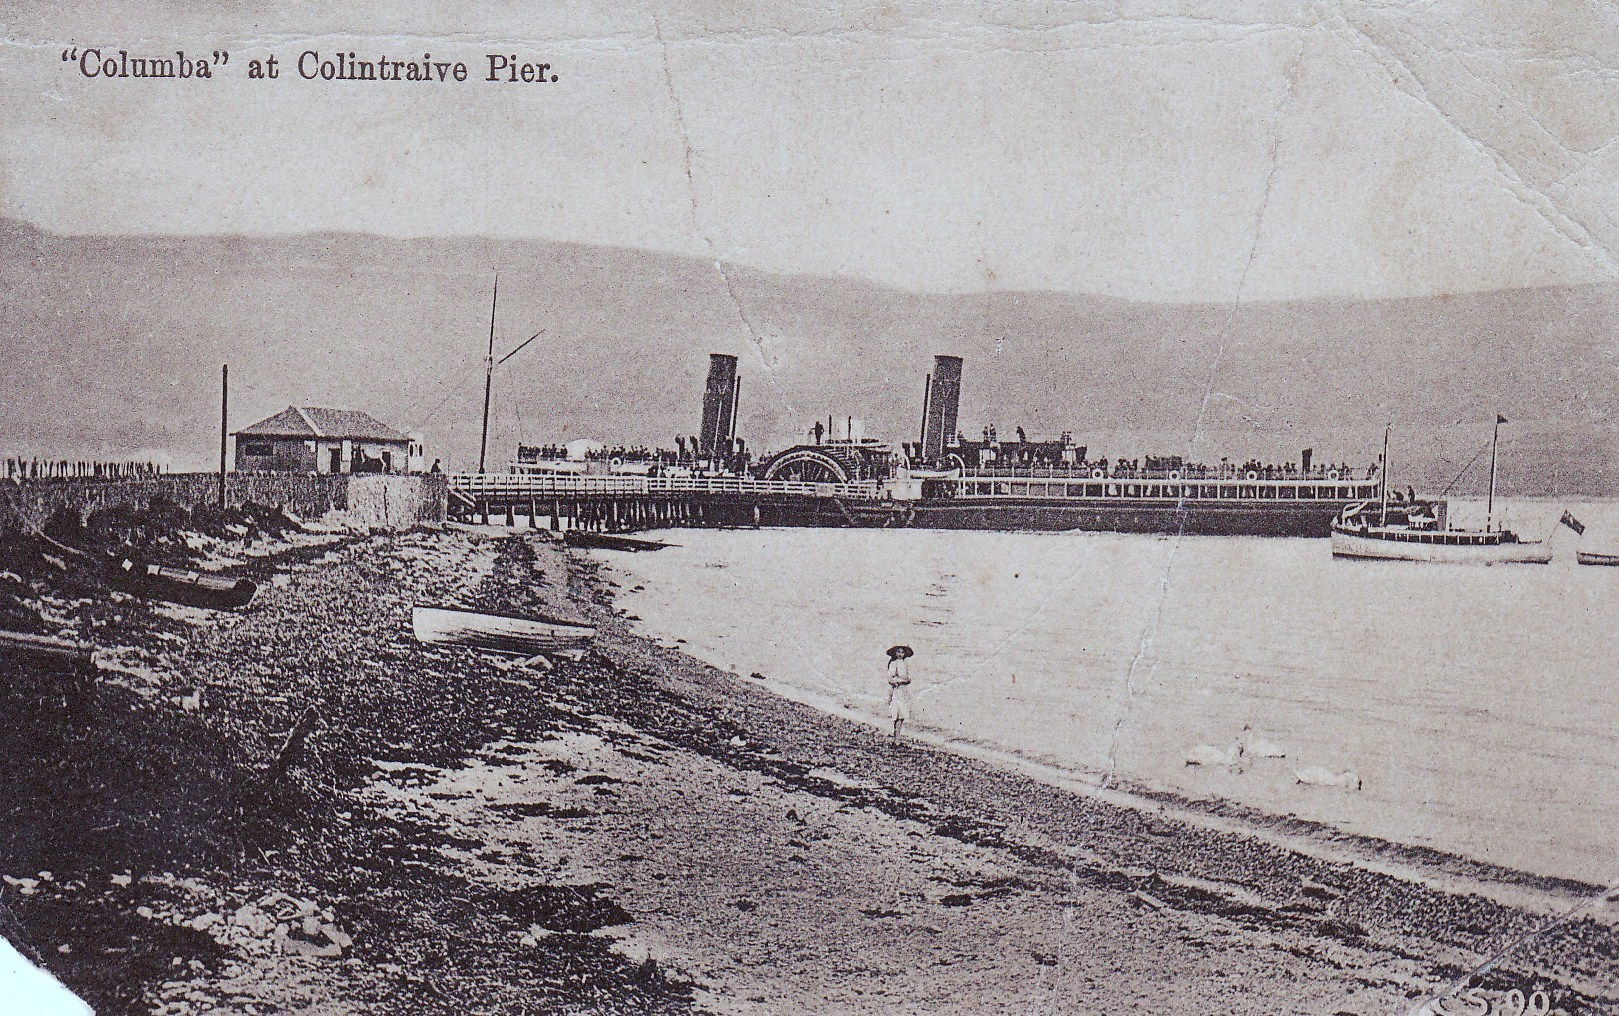 The Columba at Colintraive Pier